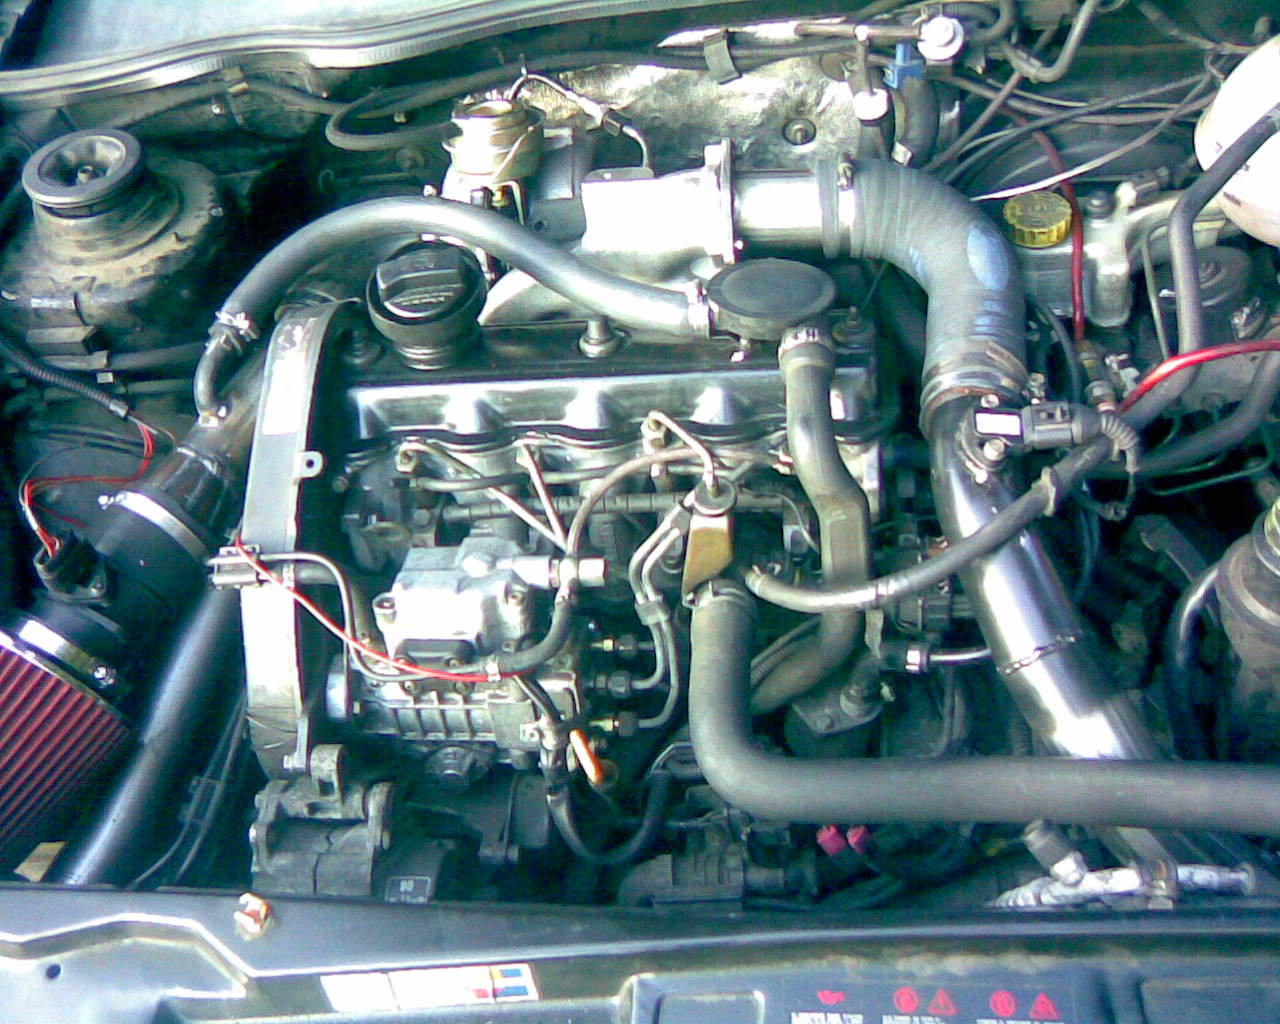 Viewtopic as well Viewtopic moreover Showthread further Volkswagen Vw Beetle Type 1 Wiring likewise Viewtopic. on vw type 3 engine diagram